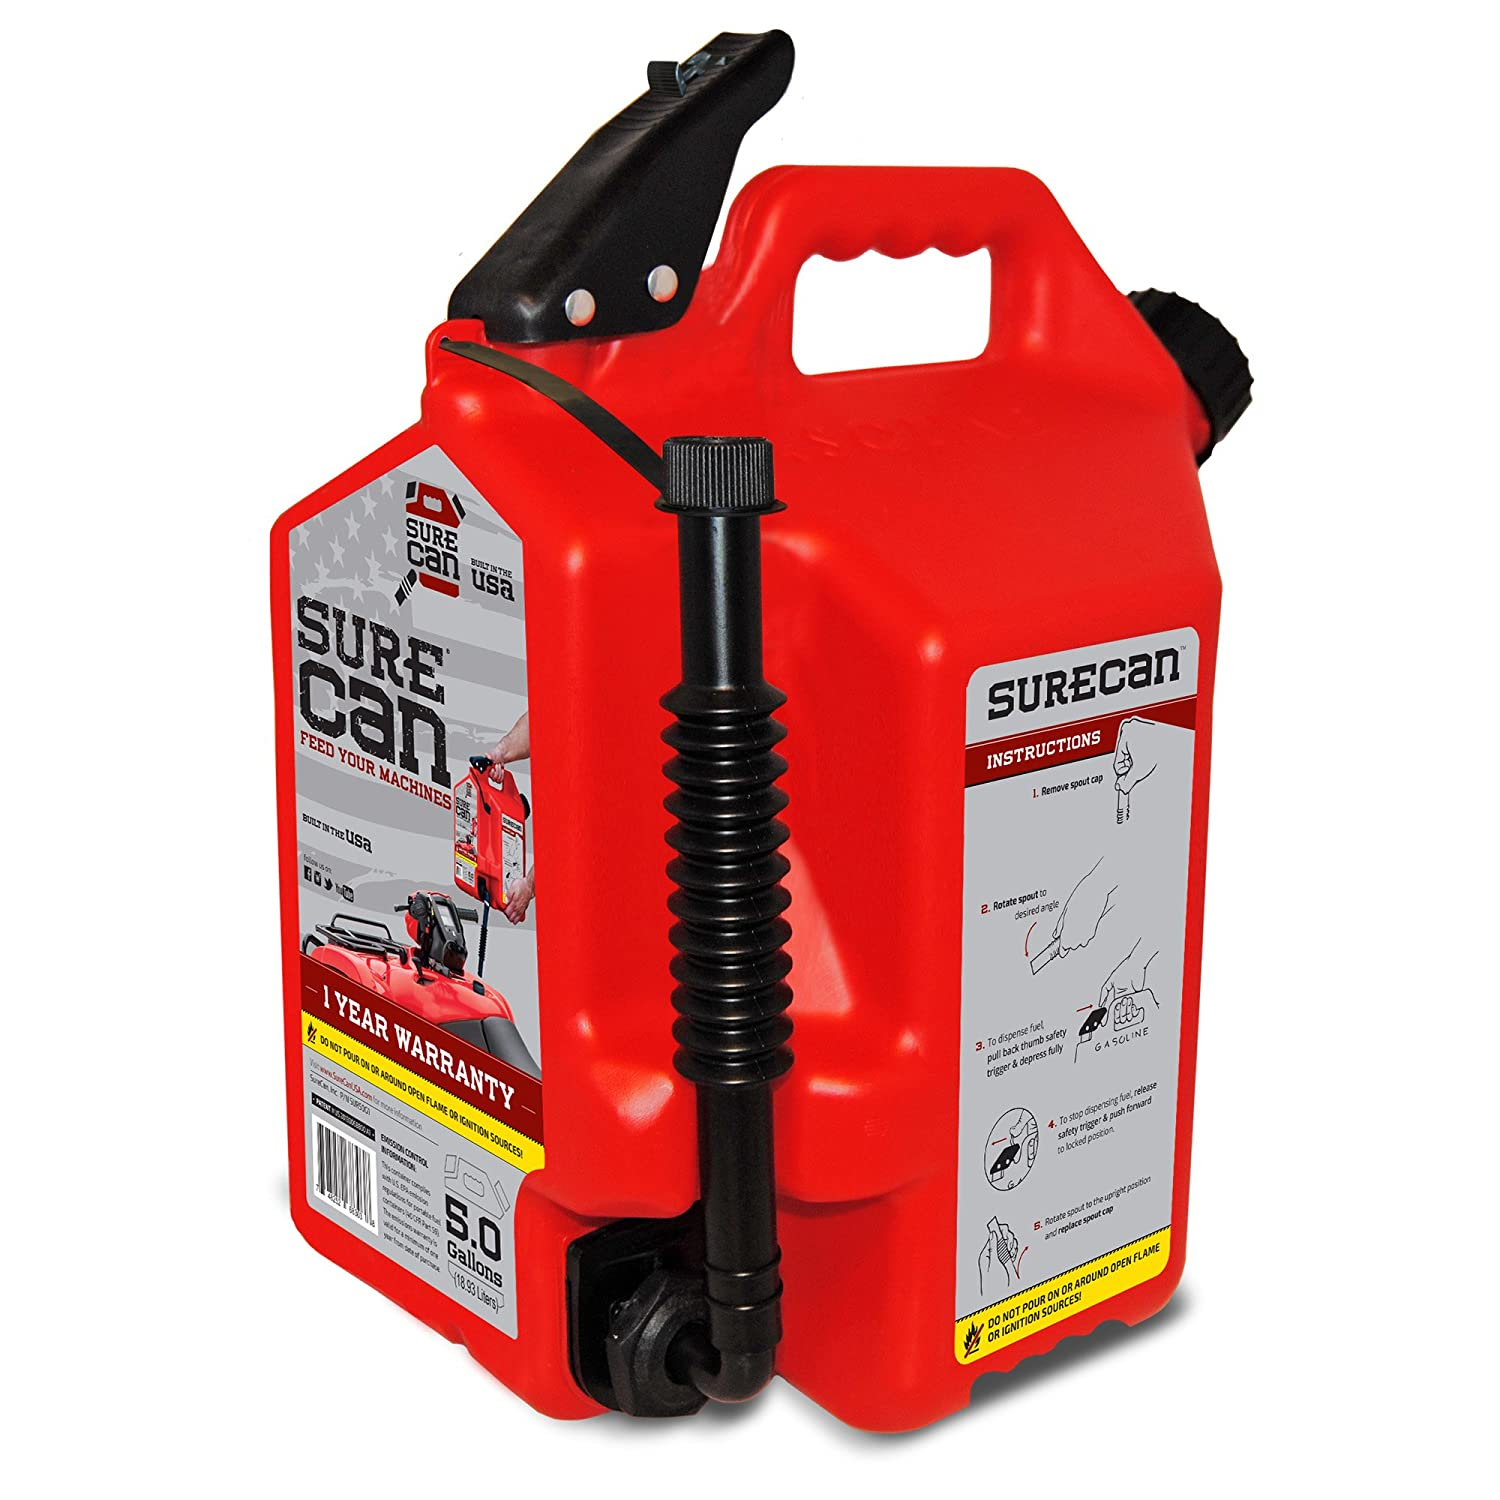 Surecan CRSUR5G1 Gasoline Can, 5.0 Gallon Surecan Inc